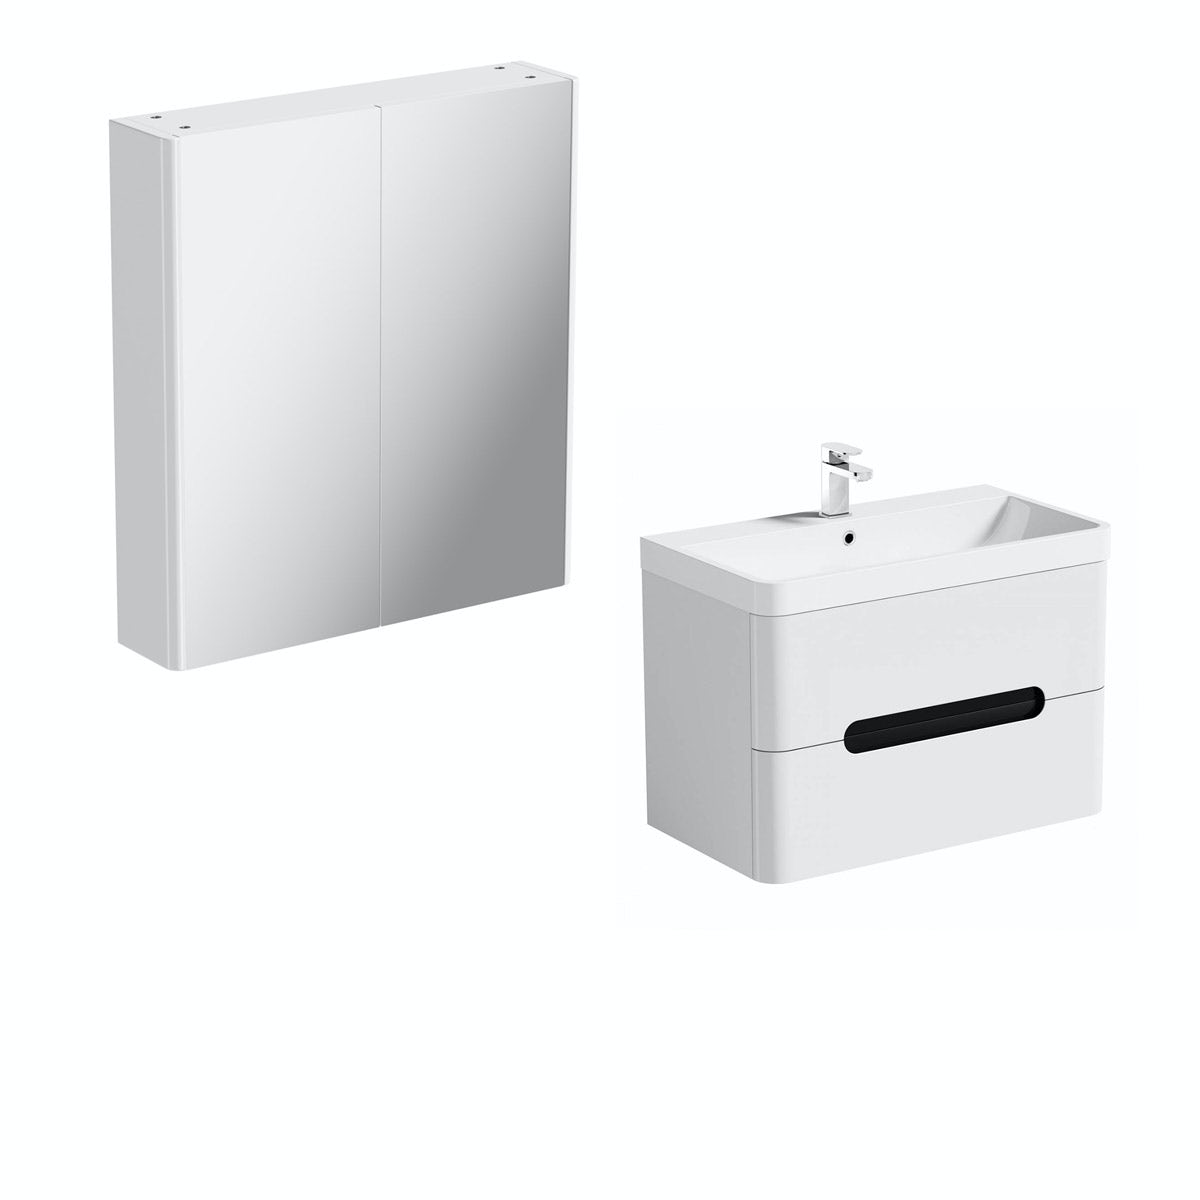 Mode Ellis essen wall hung vanity unit 800mm and mirror cabinet offer